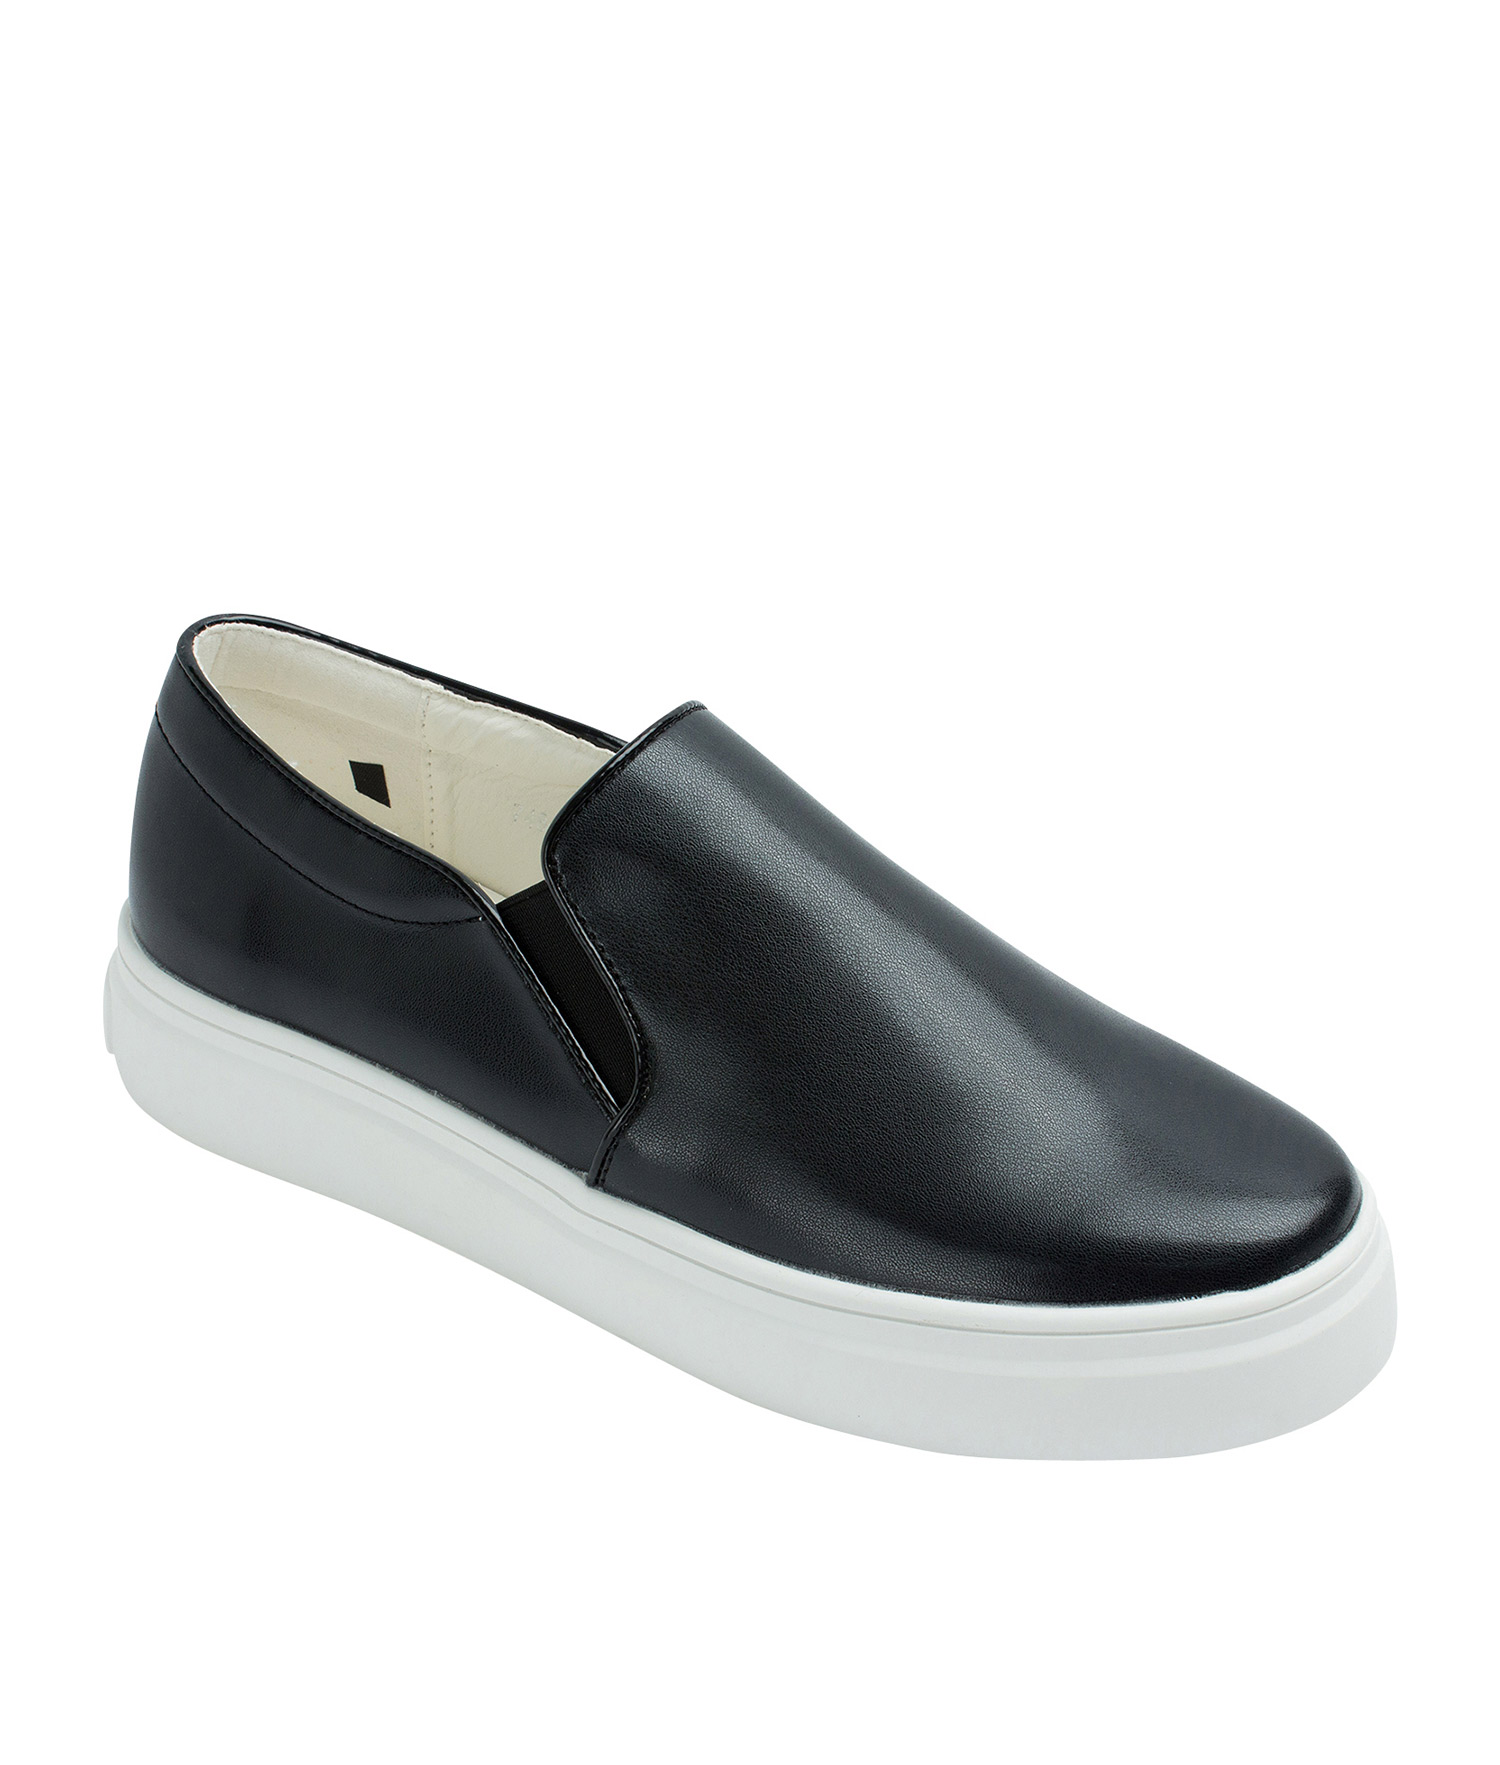 a871e8c2e4f Annakastle Womens Classic Faux Leather Slip-On Sneakers Black